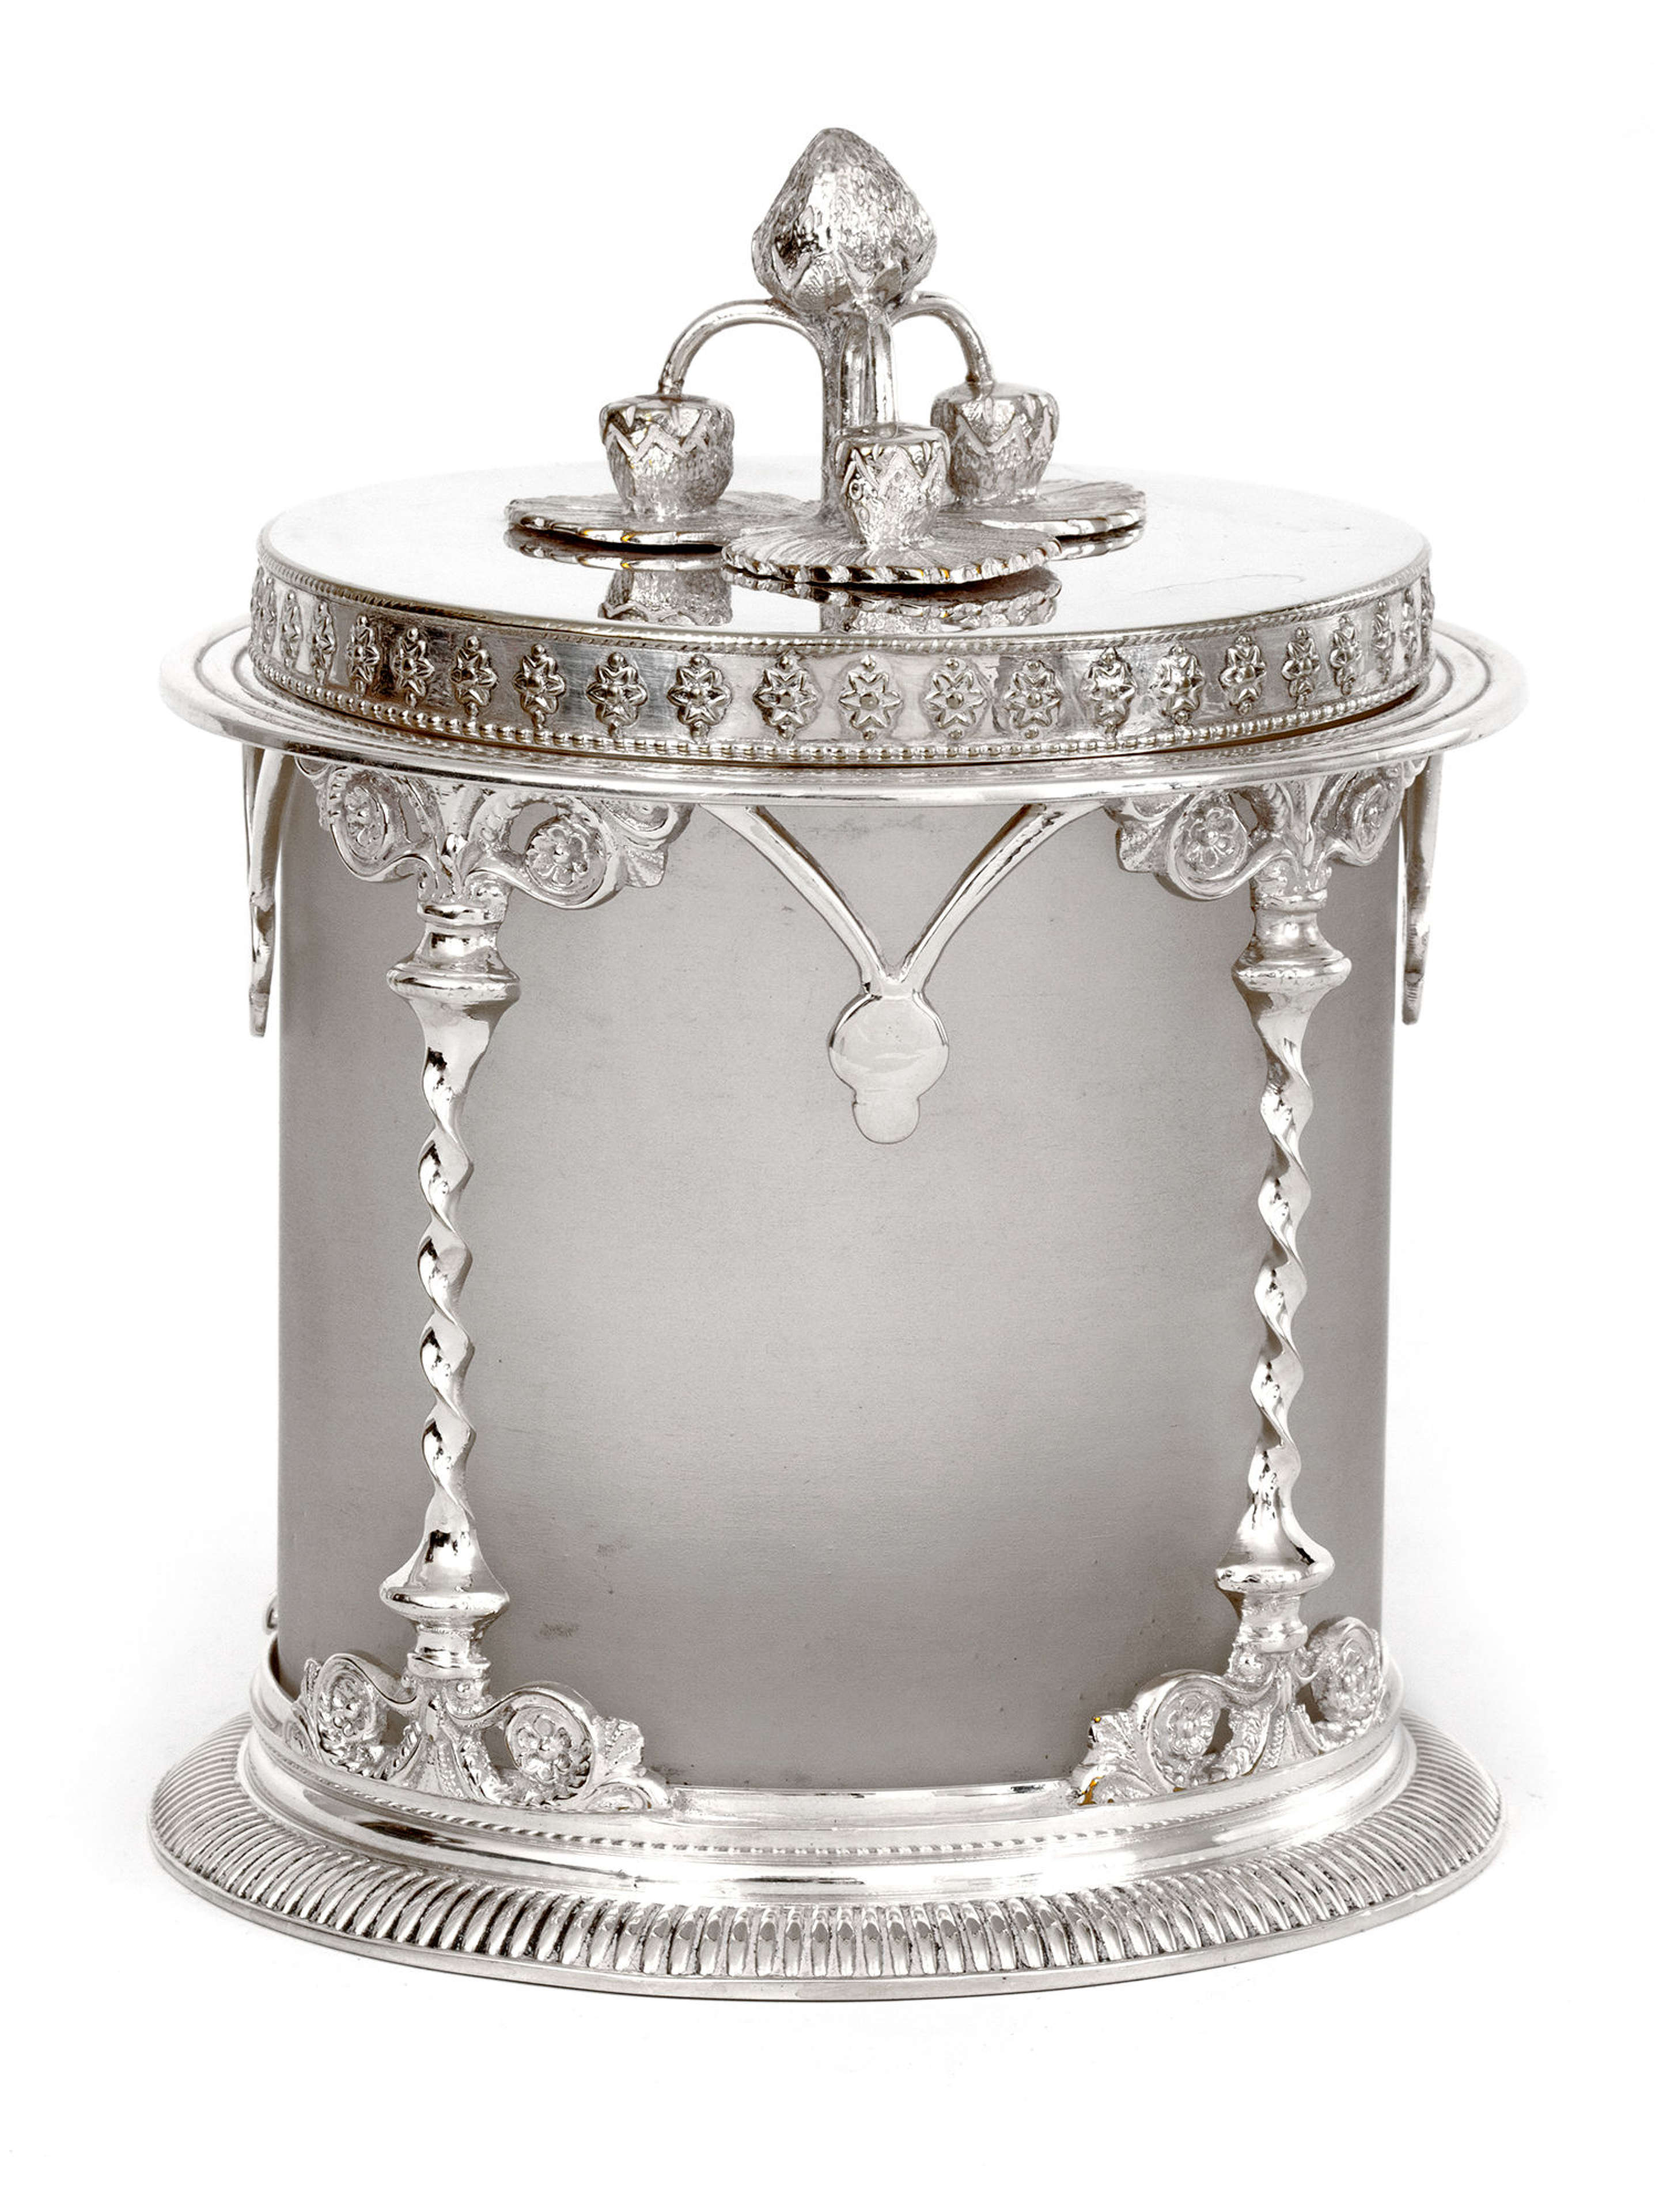 Antique Silver Plated Preserve Pot with a Frosted Glass Liner